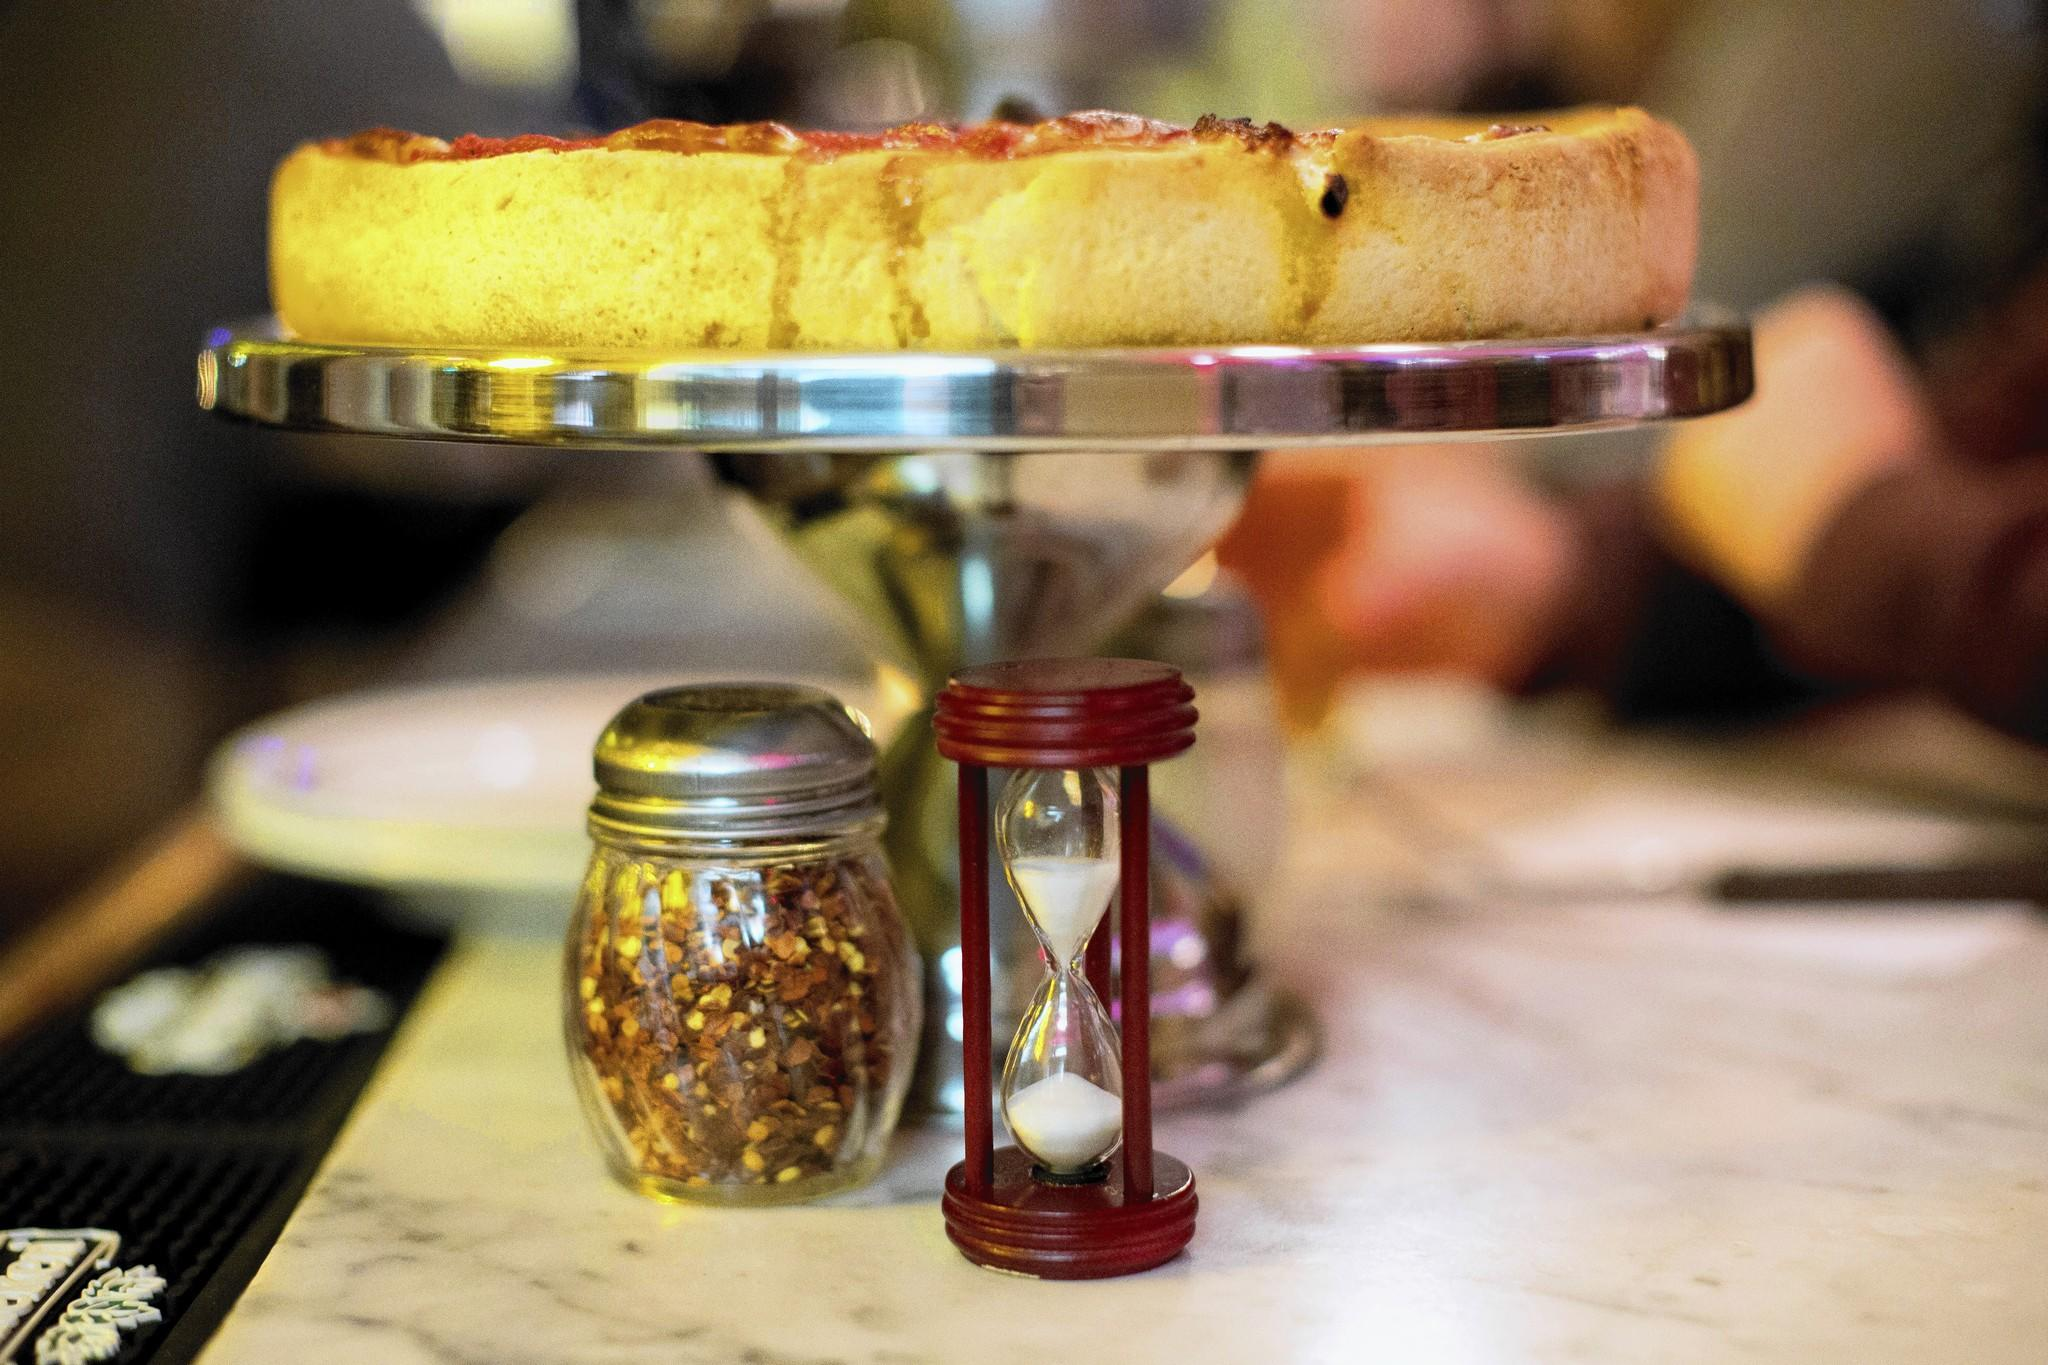 A three-minute timer is served with the pizzas at Emmett's, a pizza restaurant that specializes in Chicago-style deep dish pizza, in the SoHo neighborhood of New York.